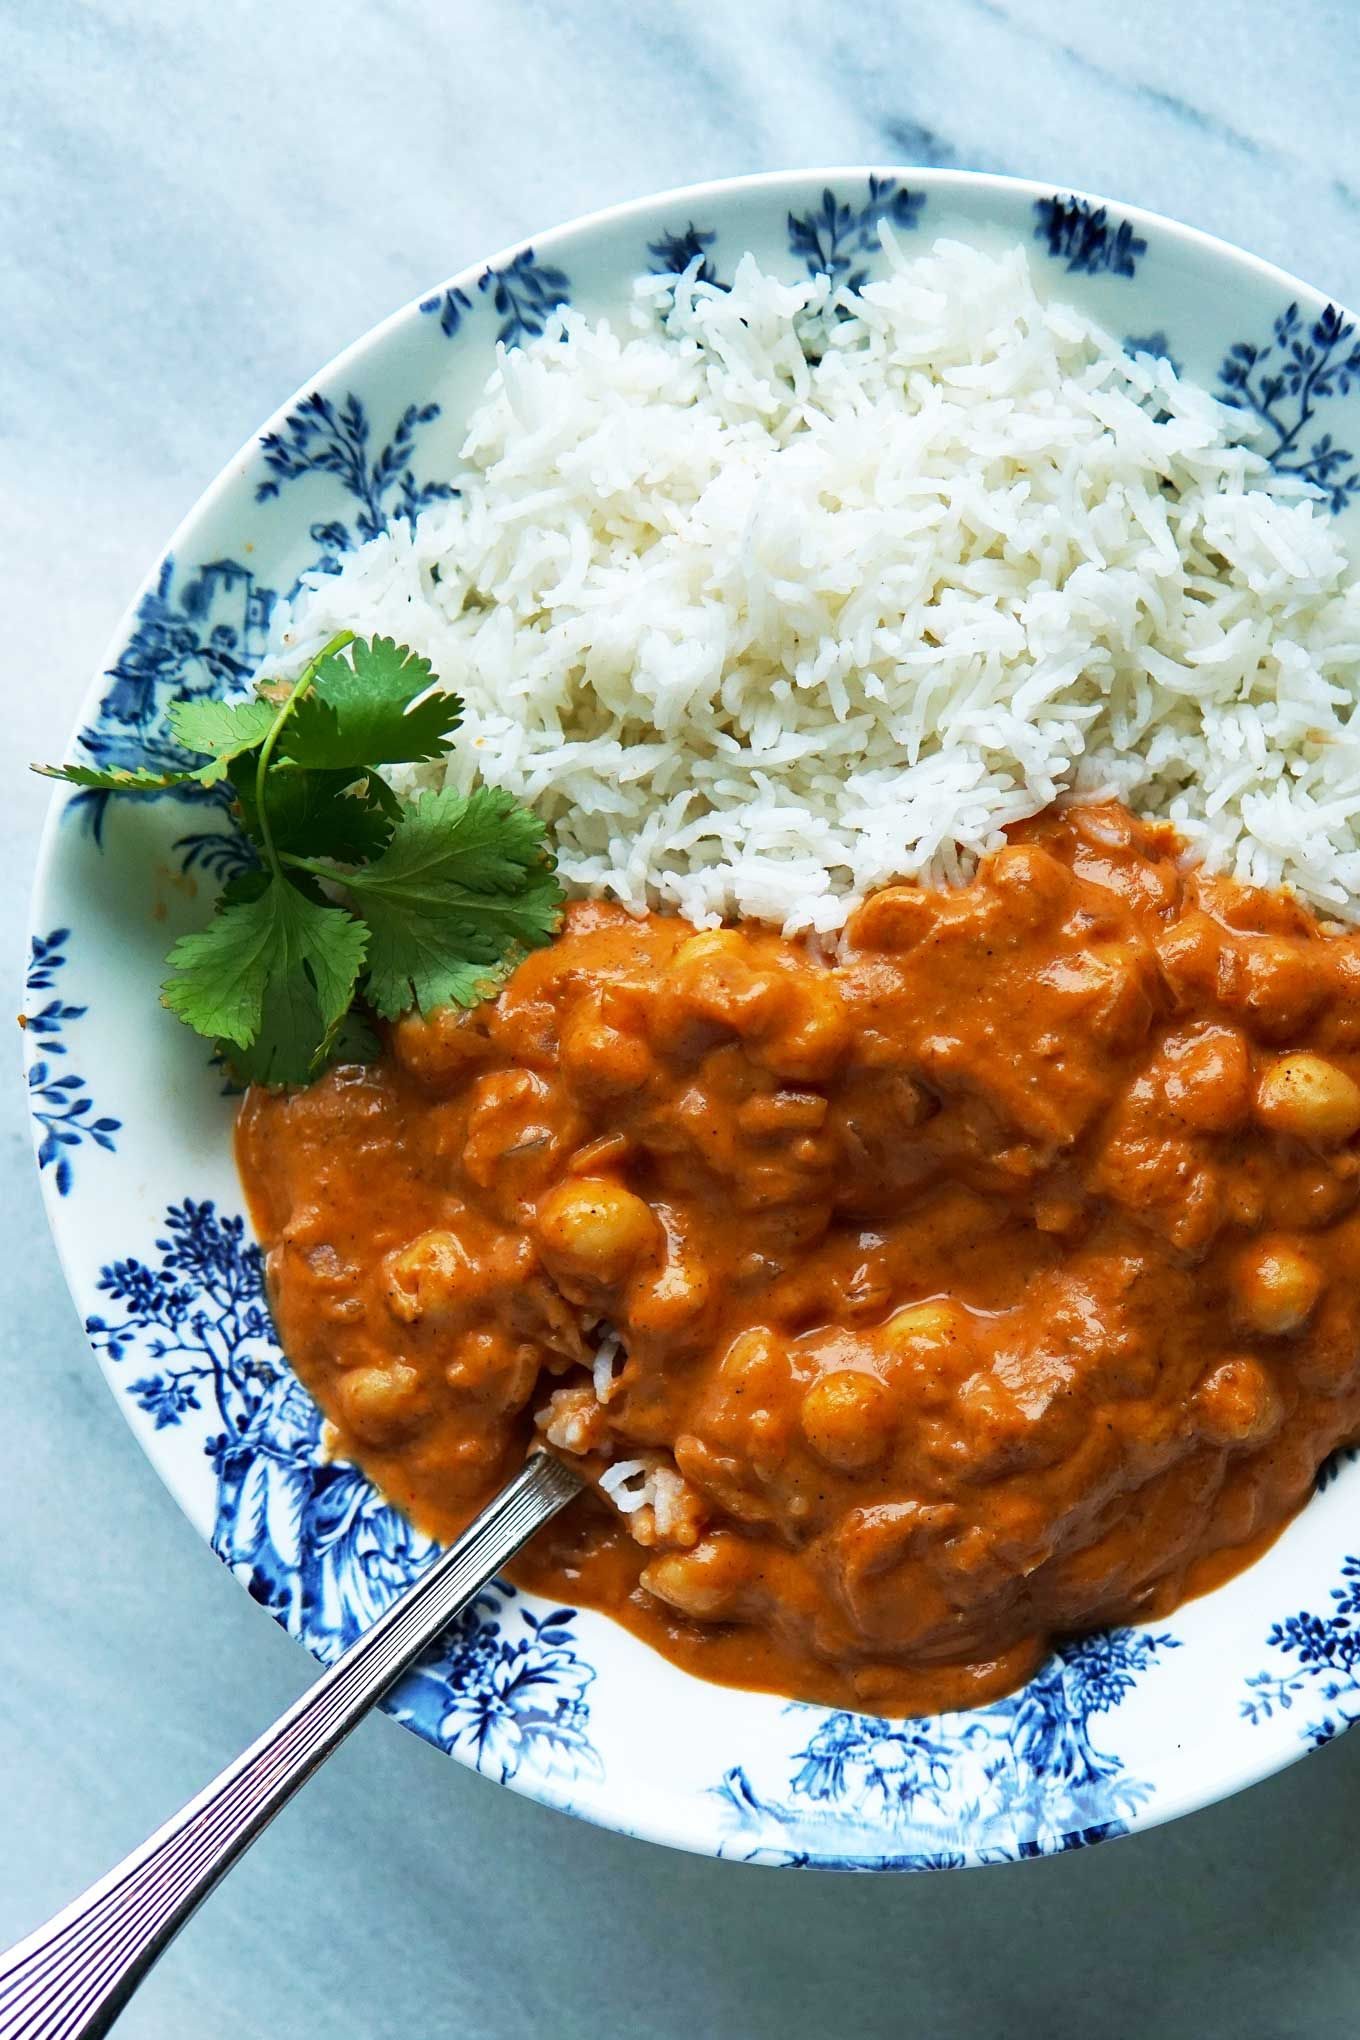 Vegan tikka masala simmer sauce recipe food clean eating better than takeout indian food at home is made easy with this vegan tikka masala simmer sauce make extra and freeze for a quick meal any day of the week forumfinder Choice Image